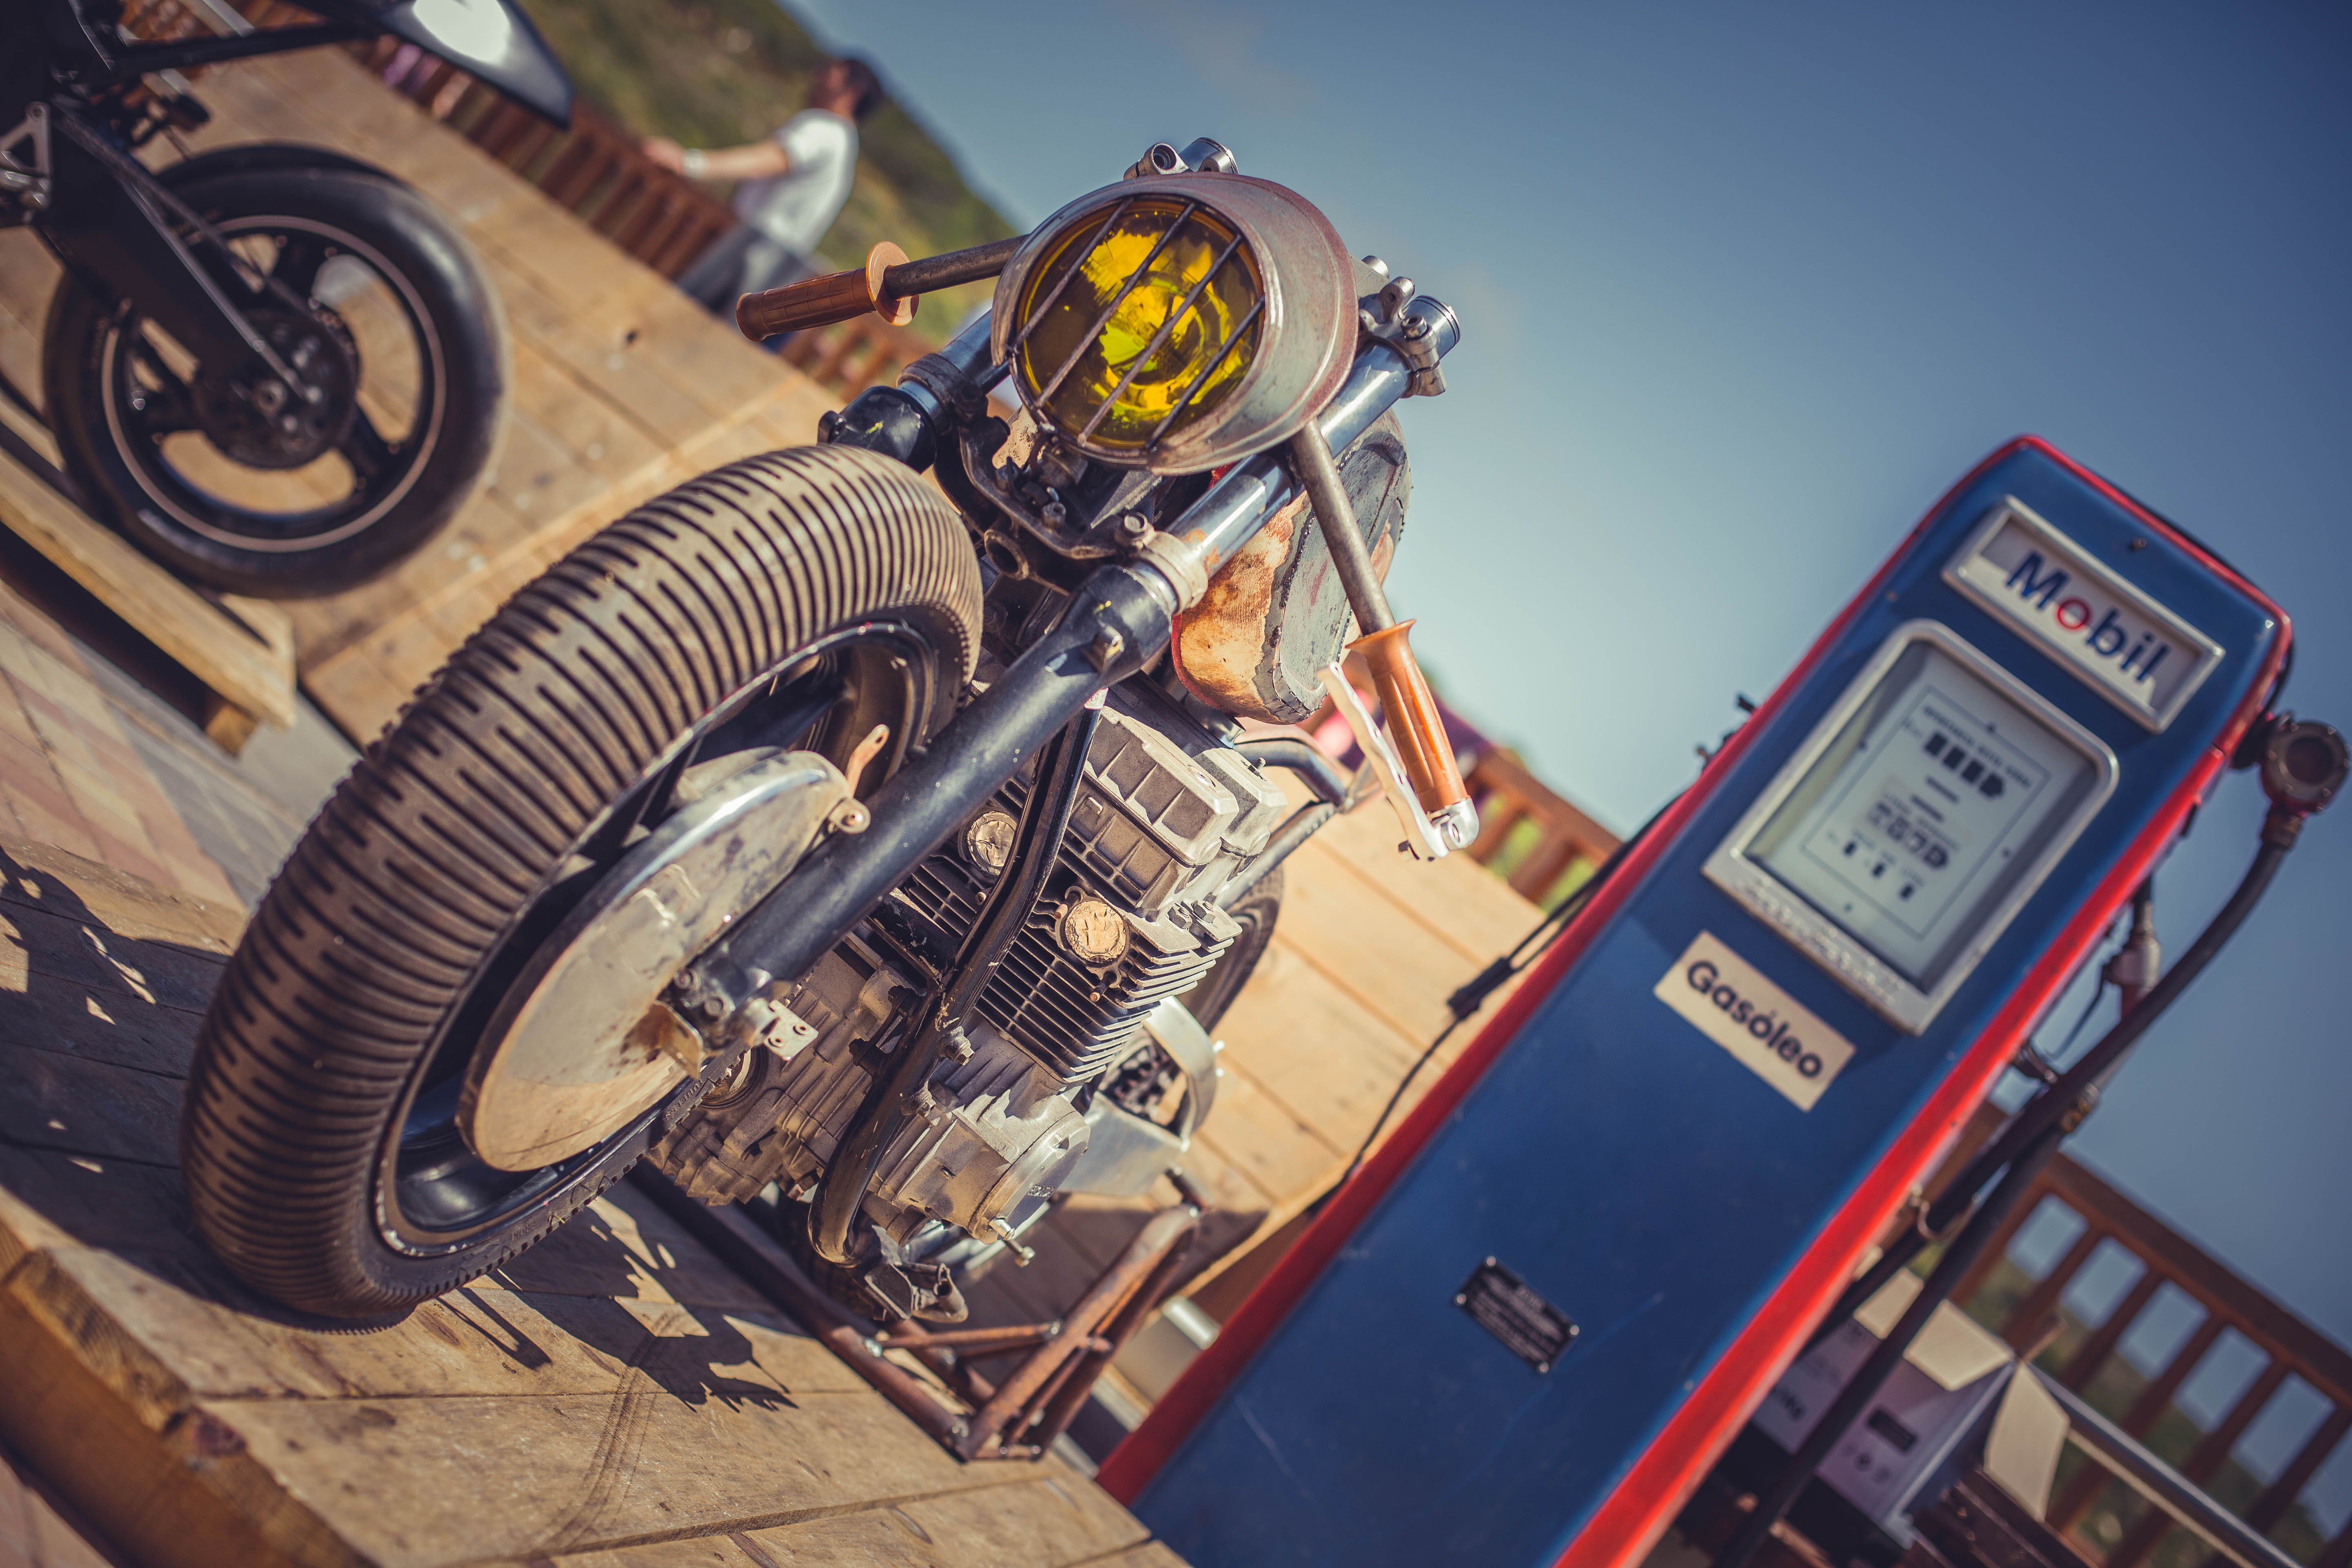 Twins & Fins – REV Motorcycle Culture